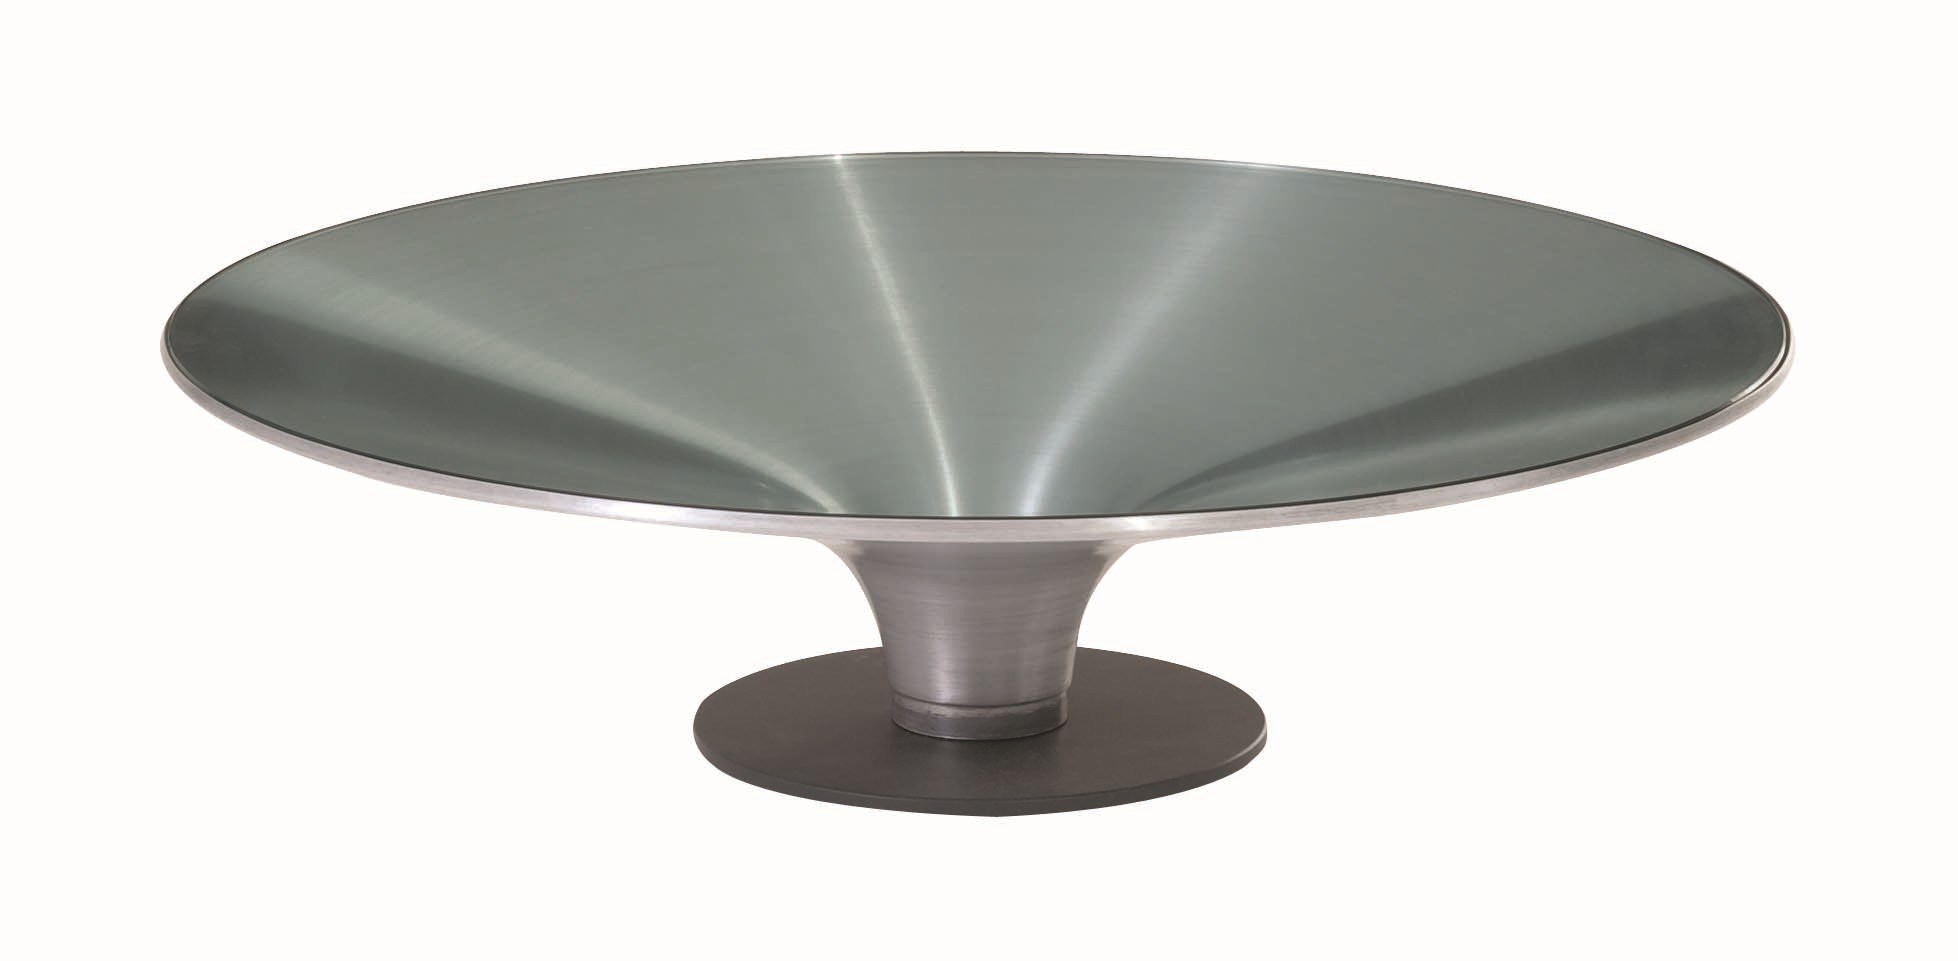 Table rabattable cuisine paris tables basses roche bobois - Roche bobois table basse ...